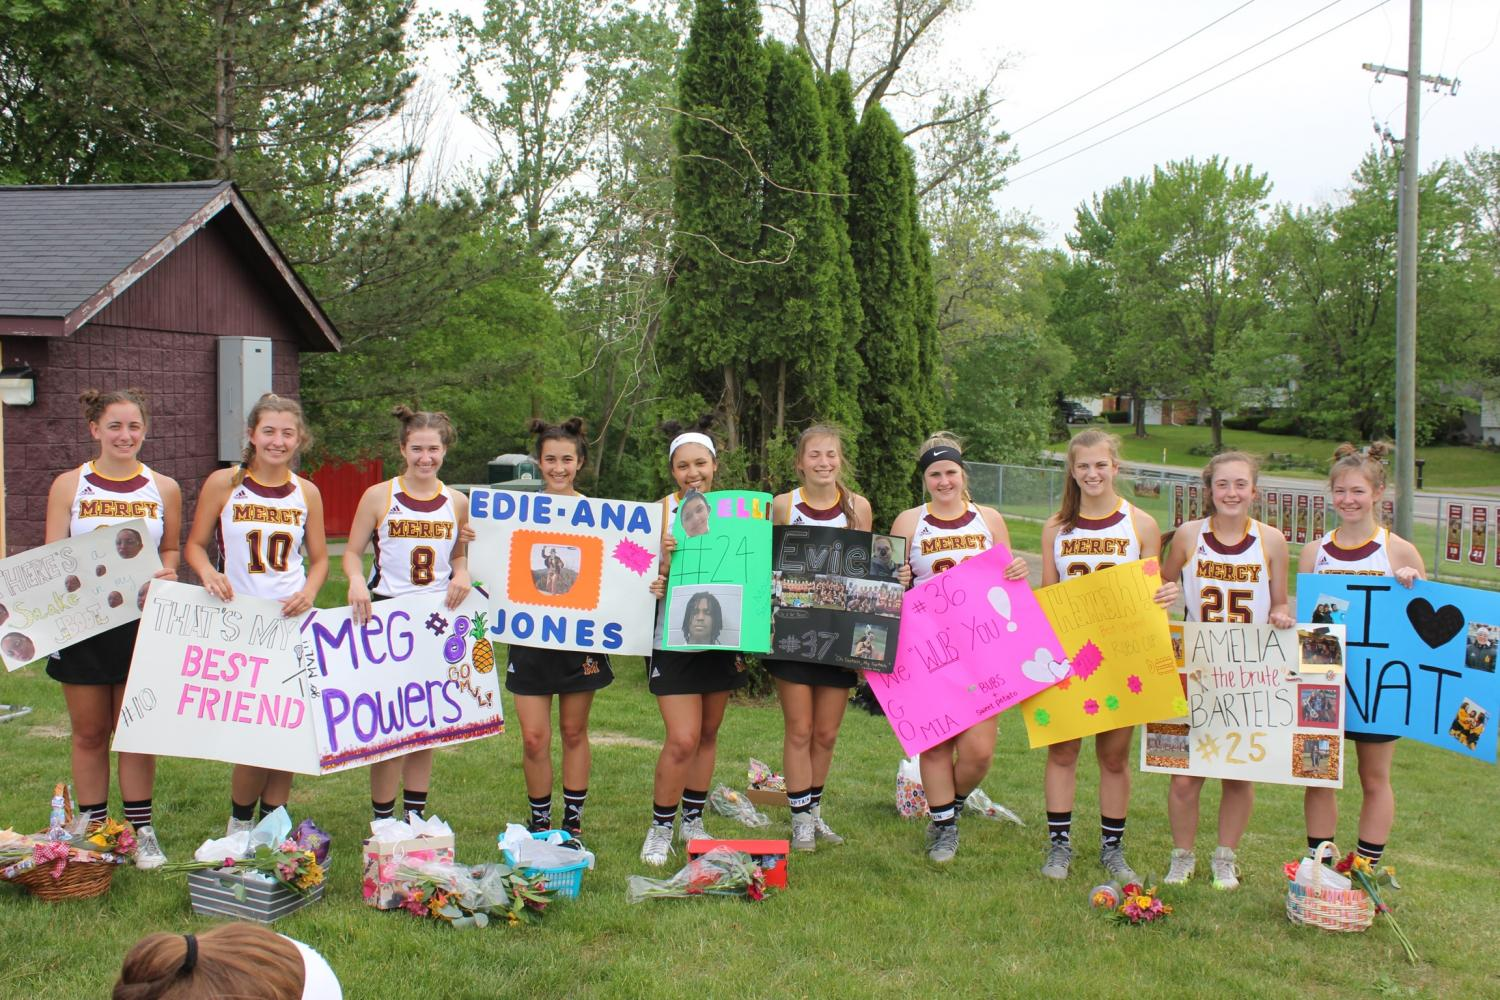 Mercy Varsity Lacrosse seniors hold up the posters their fellow teammates have given them on senior night. (From right to left: Ciara Lopus, Emma Easson, Meg Powers, Edie Jones, Ellie Gouvia , Evie Drukker, Maria Bowen, Hannah Roegner, Amelia Bartels, Natalie Masopust) (Photo courtesy of: Amelia Bartels)